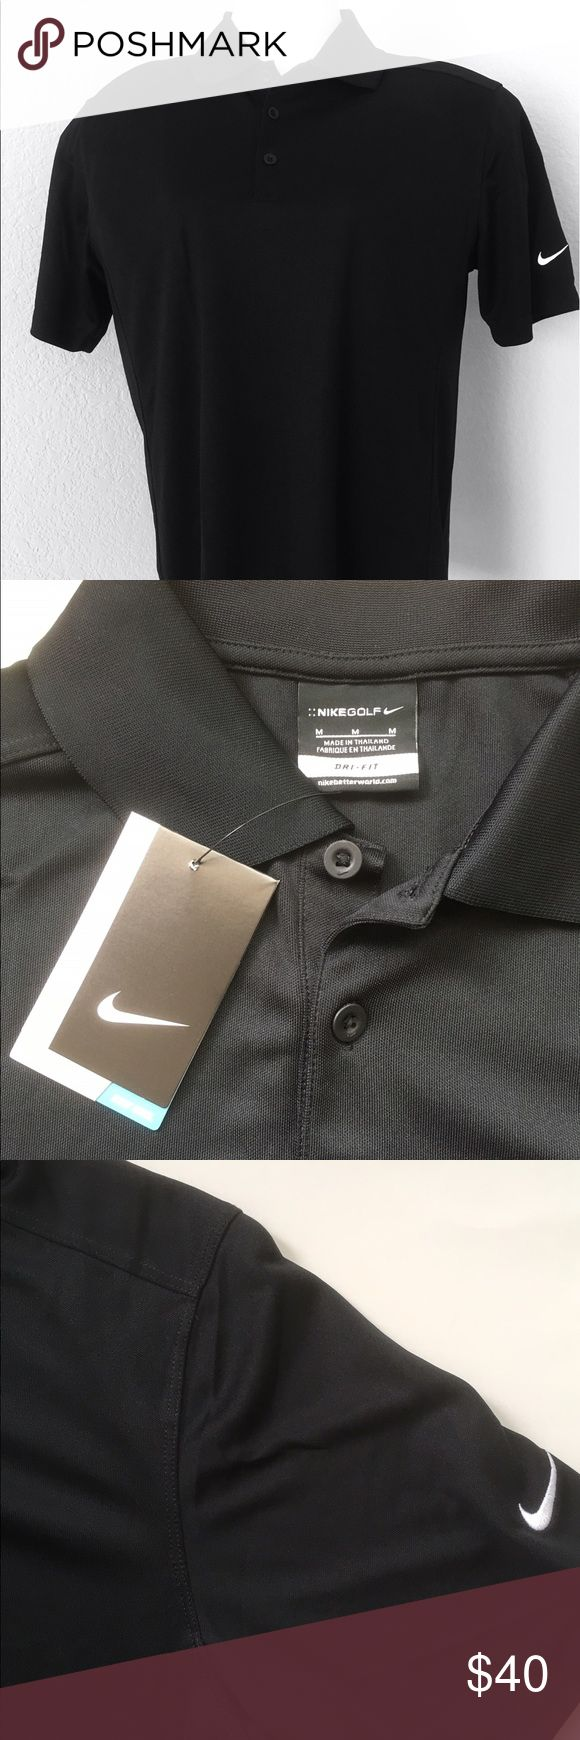 Nike Golf men's polo shirt short sleeves new sz M New with tags Nike Golf men's polo shirt short sleeves new sz M . Chest size 44 inches , that is 22 inches arm pit to arm pit front and 22 inches arm pit to pit back .  Length 29 inches . Soft poly dry fit fabric , at the bottom width is 42 inches ( at the hips ) Nike Shirts Polos